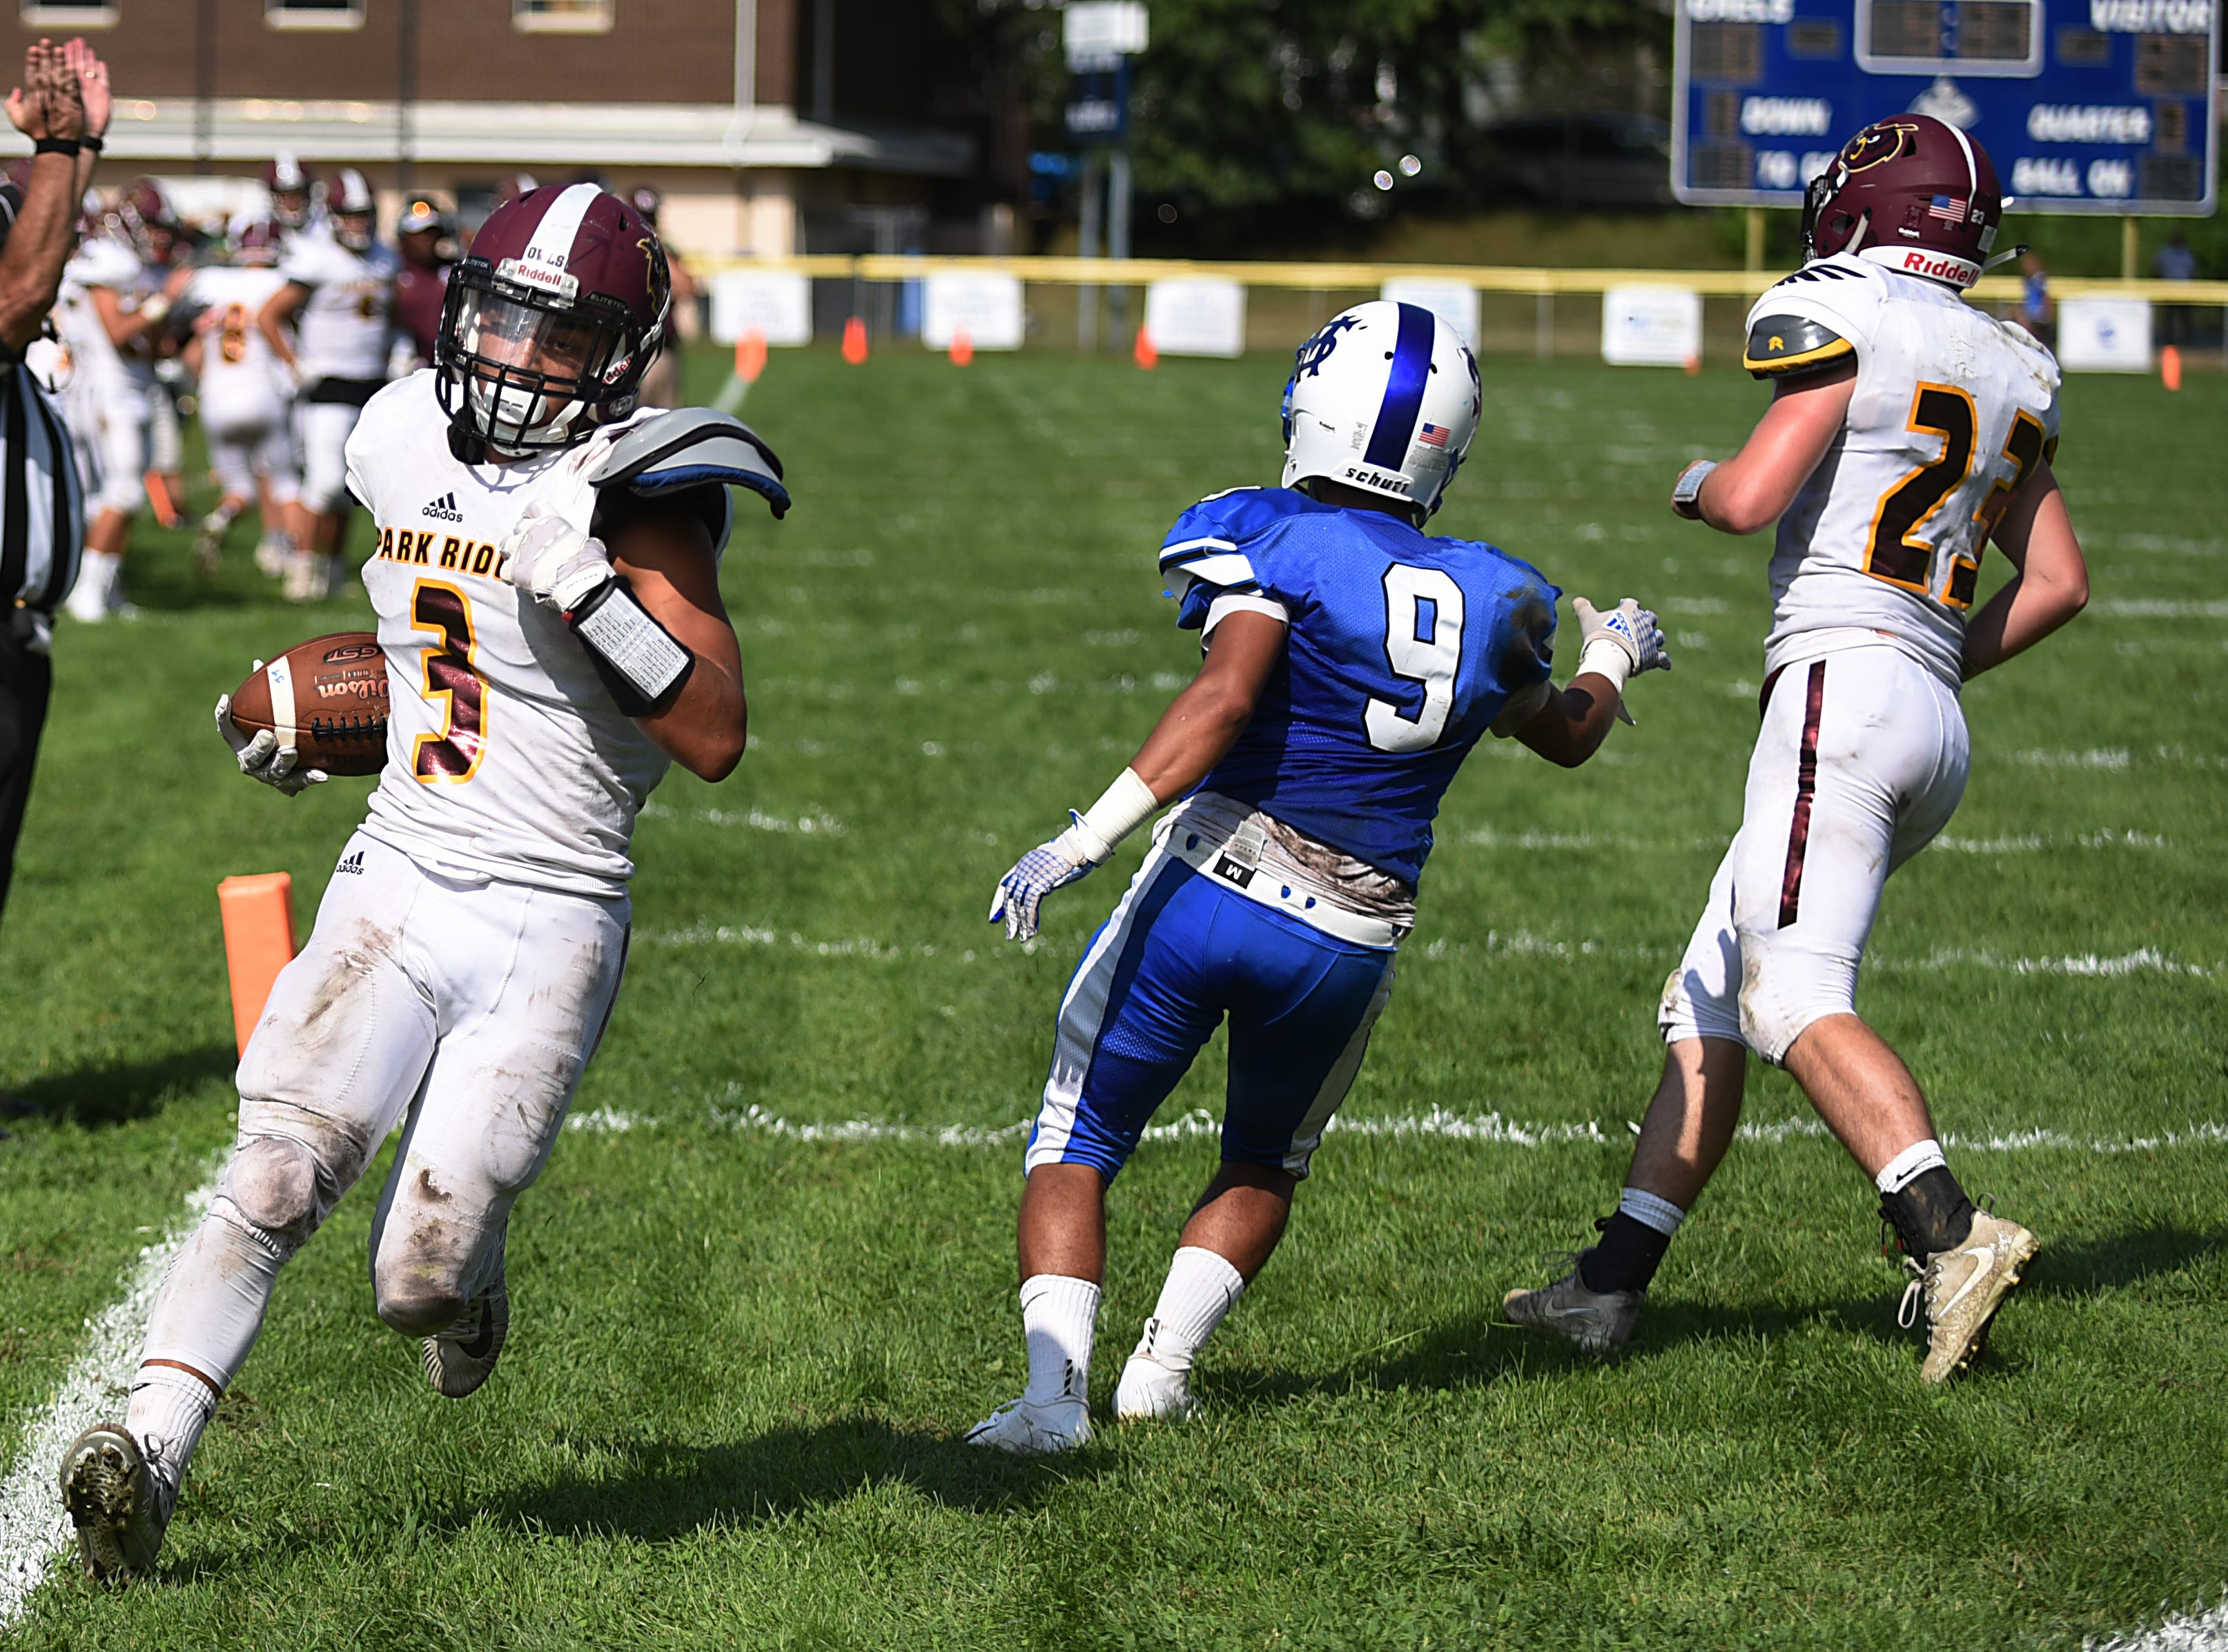 High school football game between Park Ridge and St. Mary at Tamblyn Field in Rutherford on Saturday September 15, 2018. (From left) PR#3 Justin Wagner, SM#9 Ethan Rivera and PR#23 Thomas Ryan.